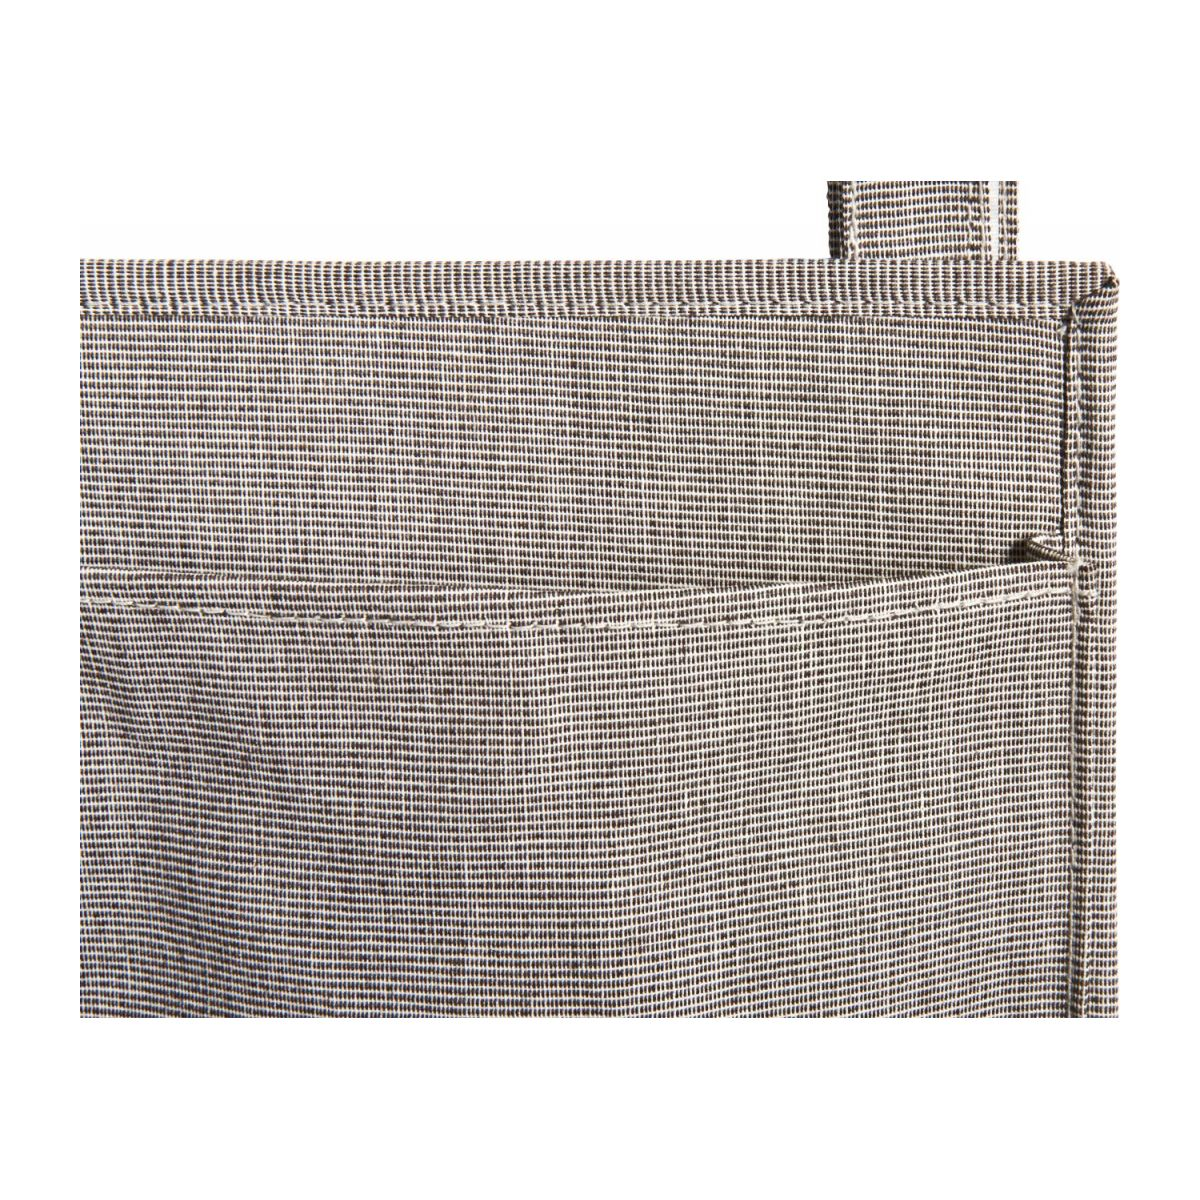 Wall modular storage with pockets, grey fabric and bamboo n°6